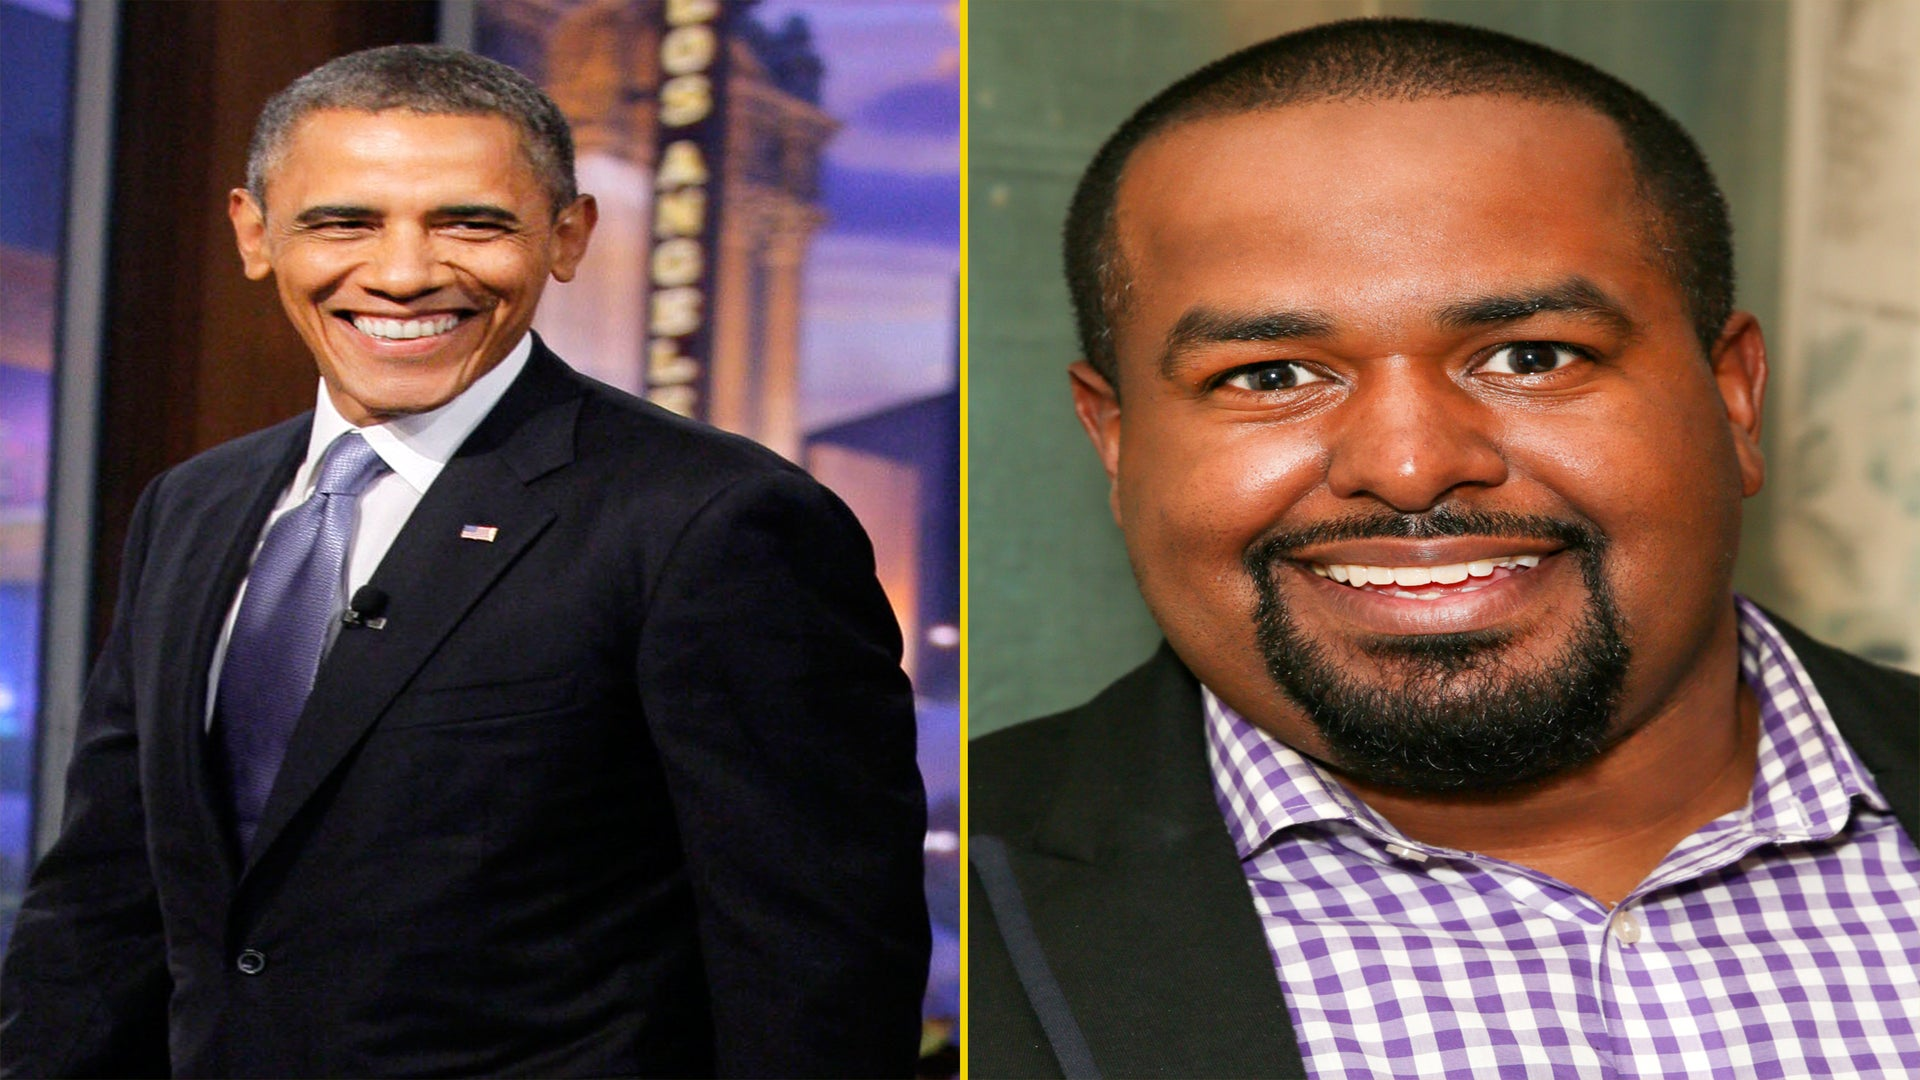 Faith and Politics: Joshua DuBois on Counseling President Obama with Daily Devotions